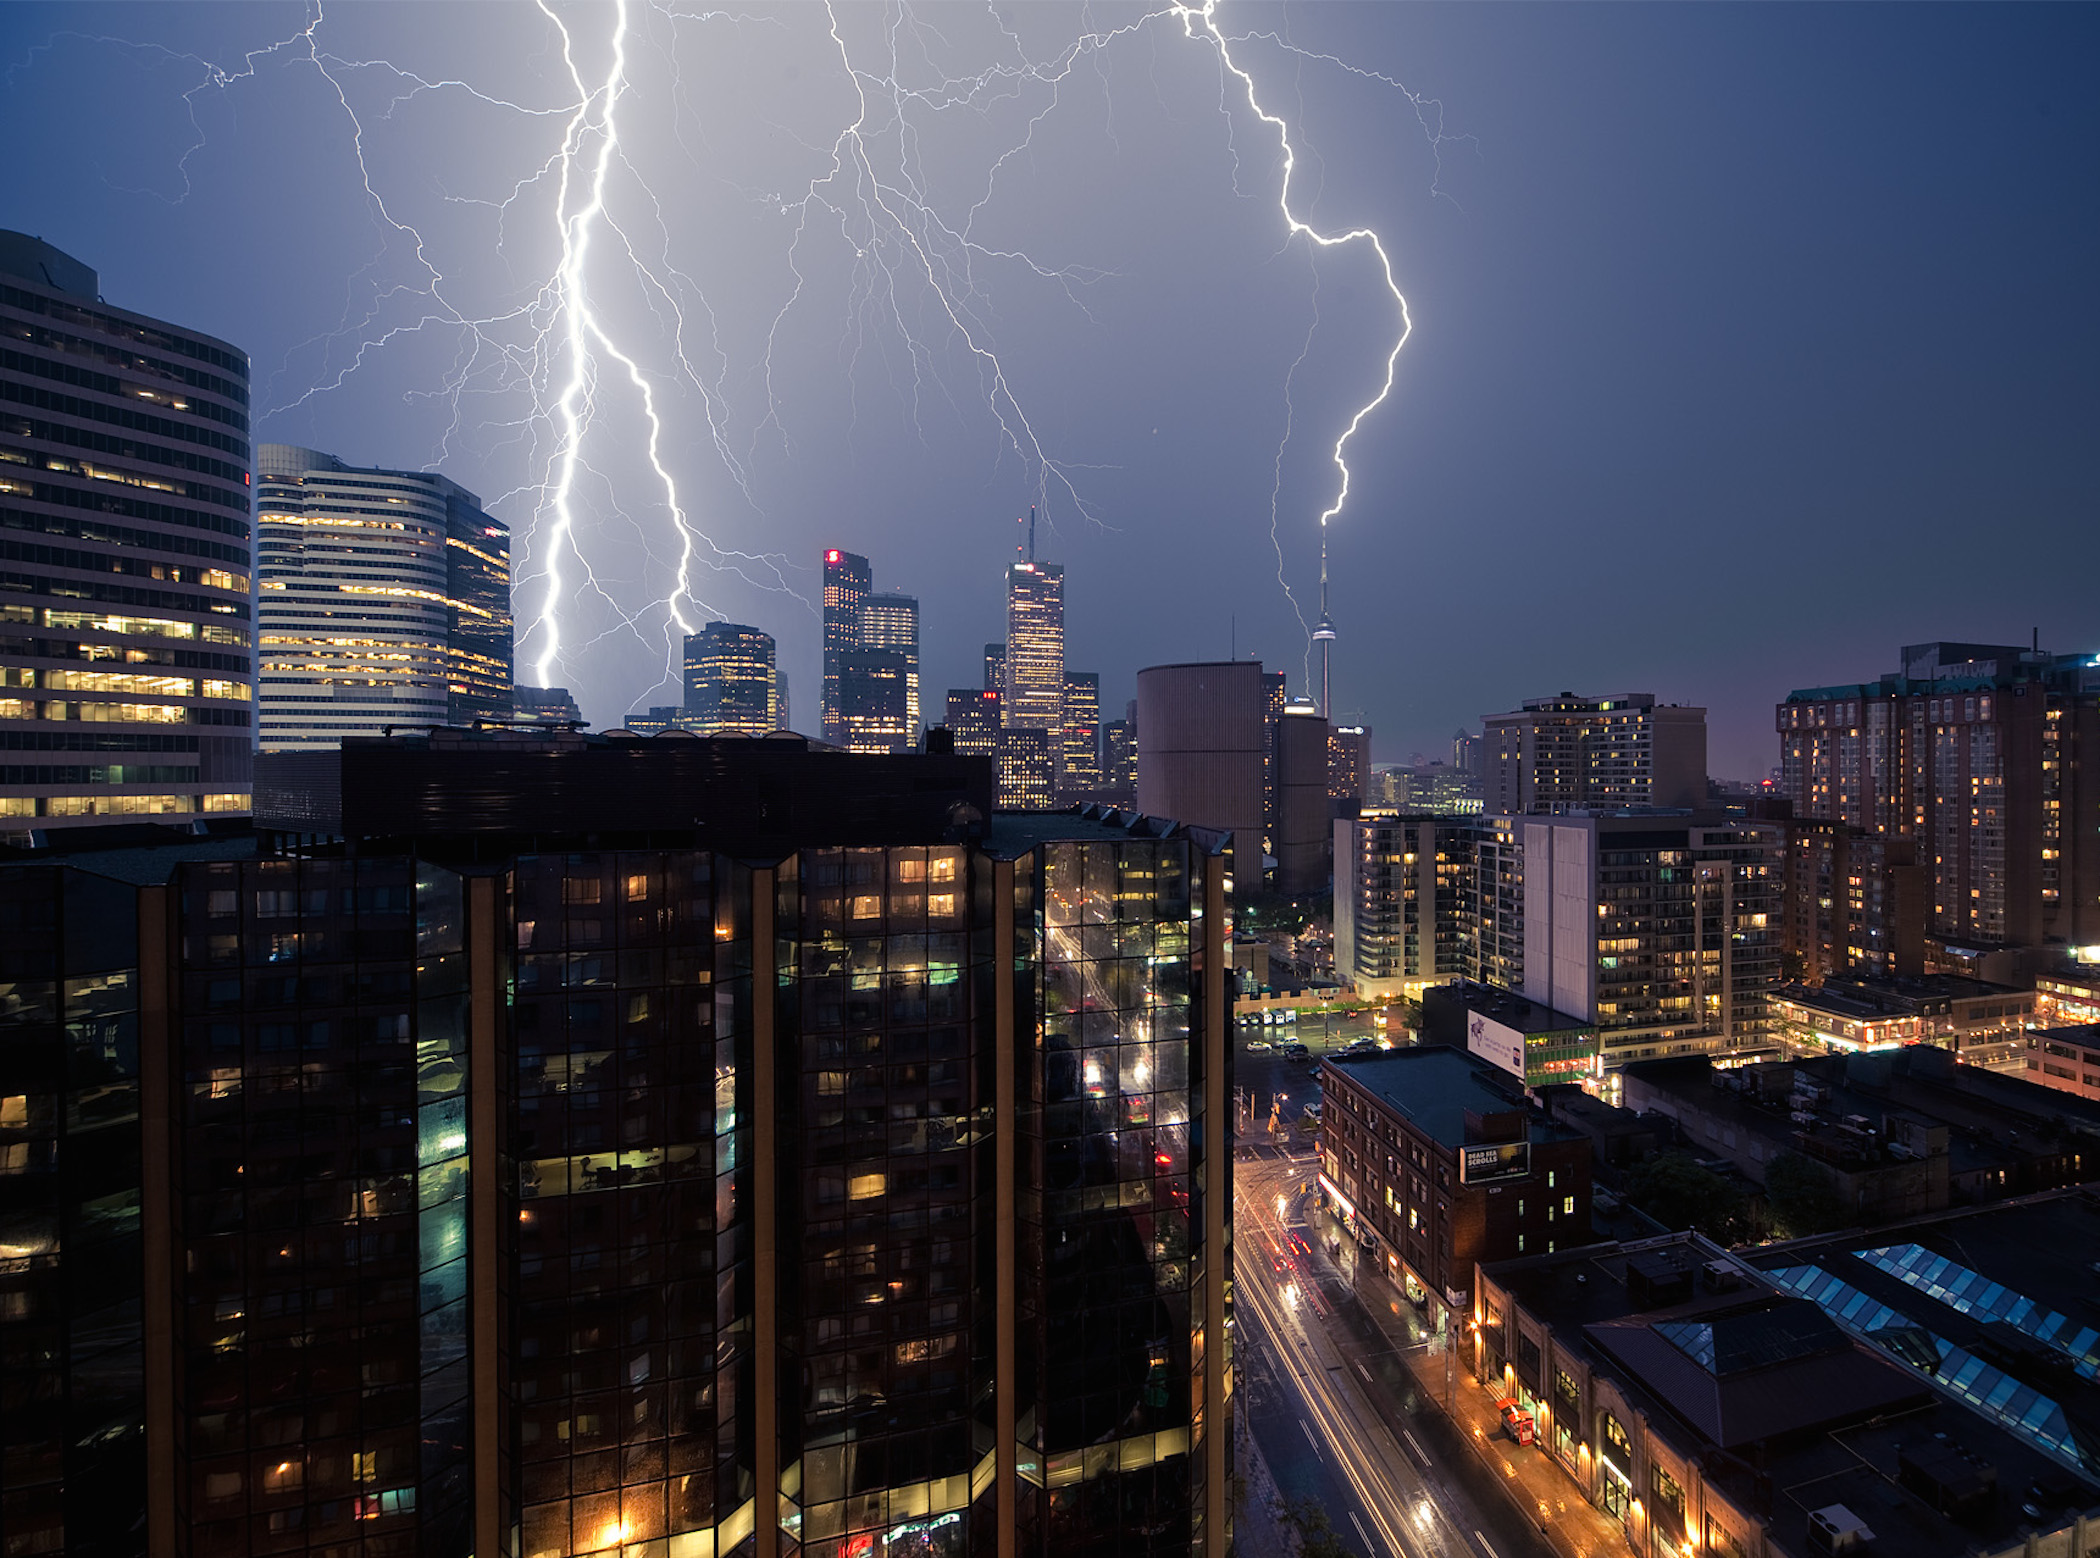 City Lightning Storm Wallpaper Free City Downloads